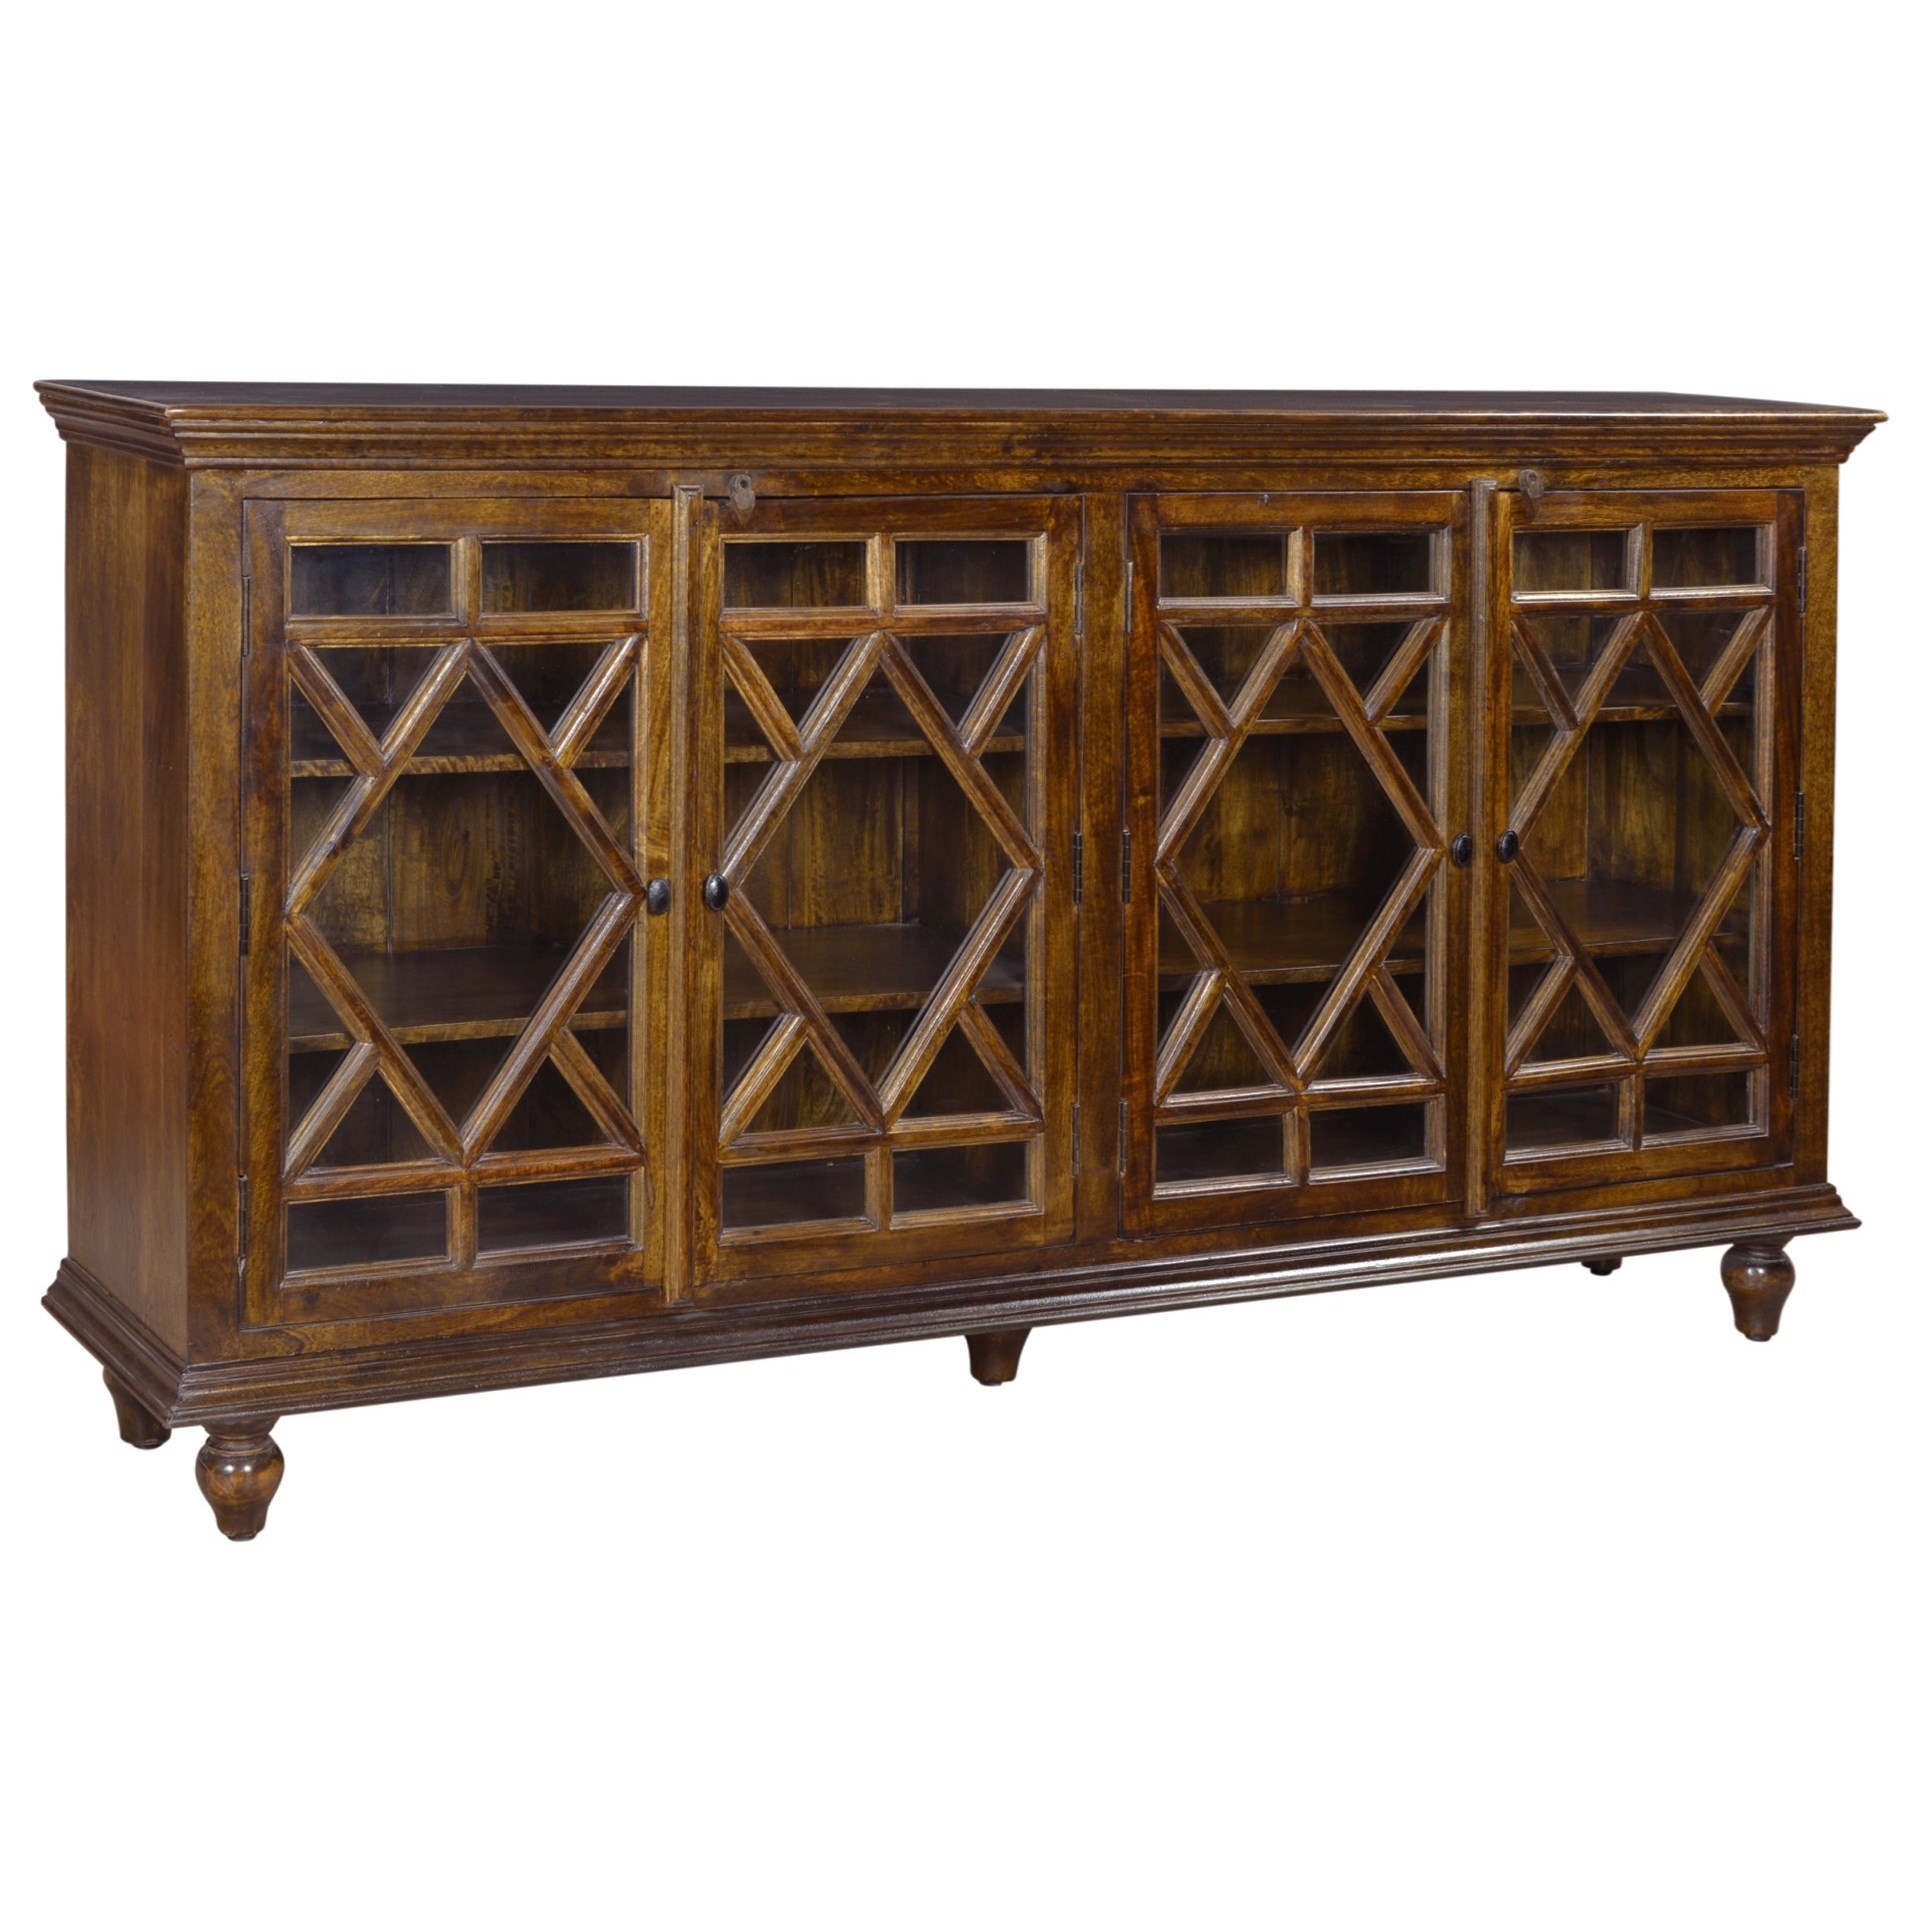 Coast to Coast Imports Coast to Coast Accents Four Door Credenza - Item Number: 79723